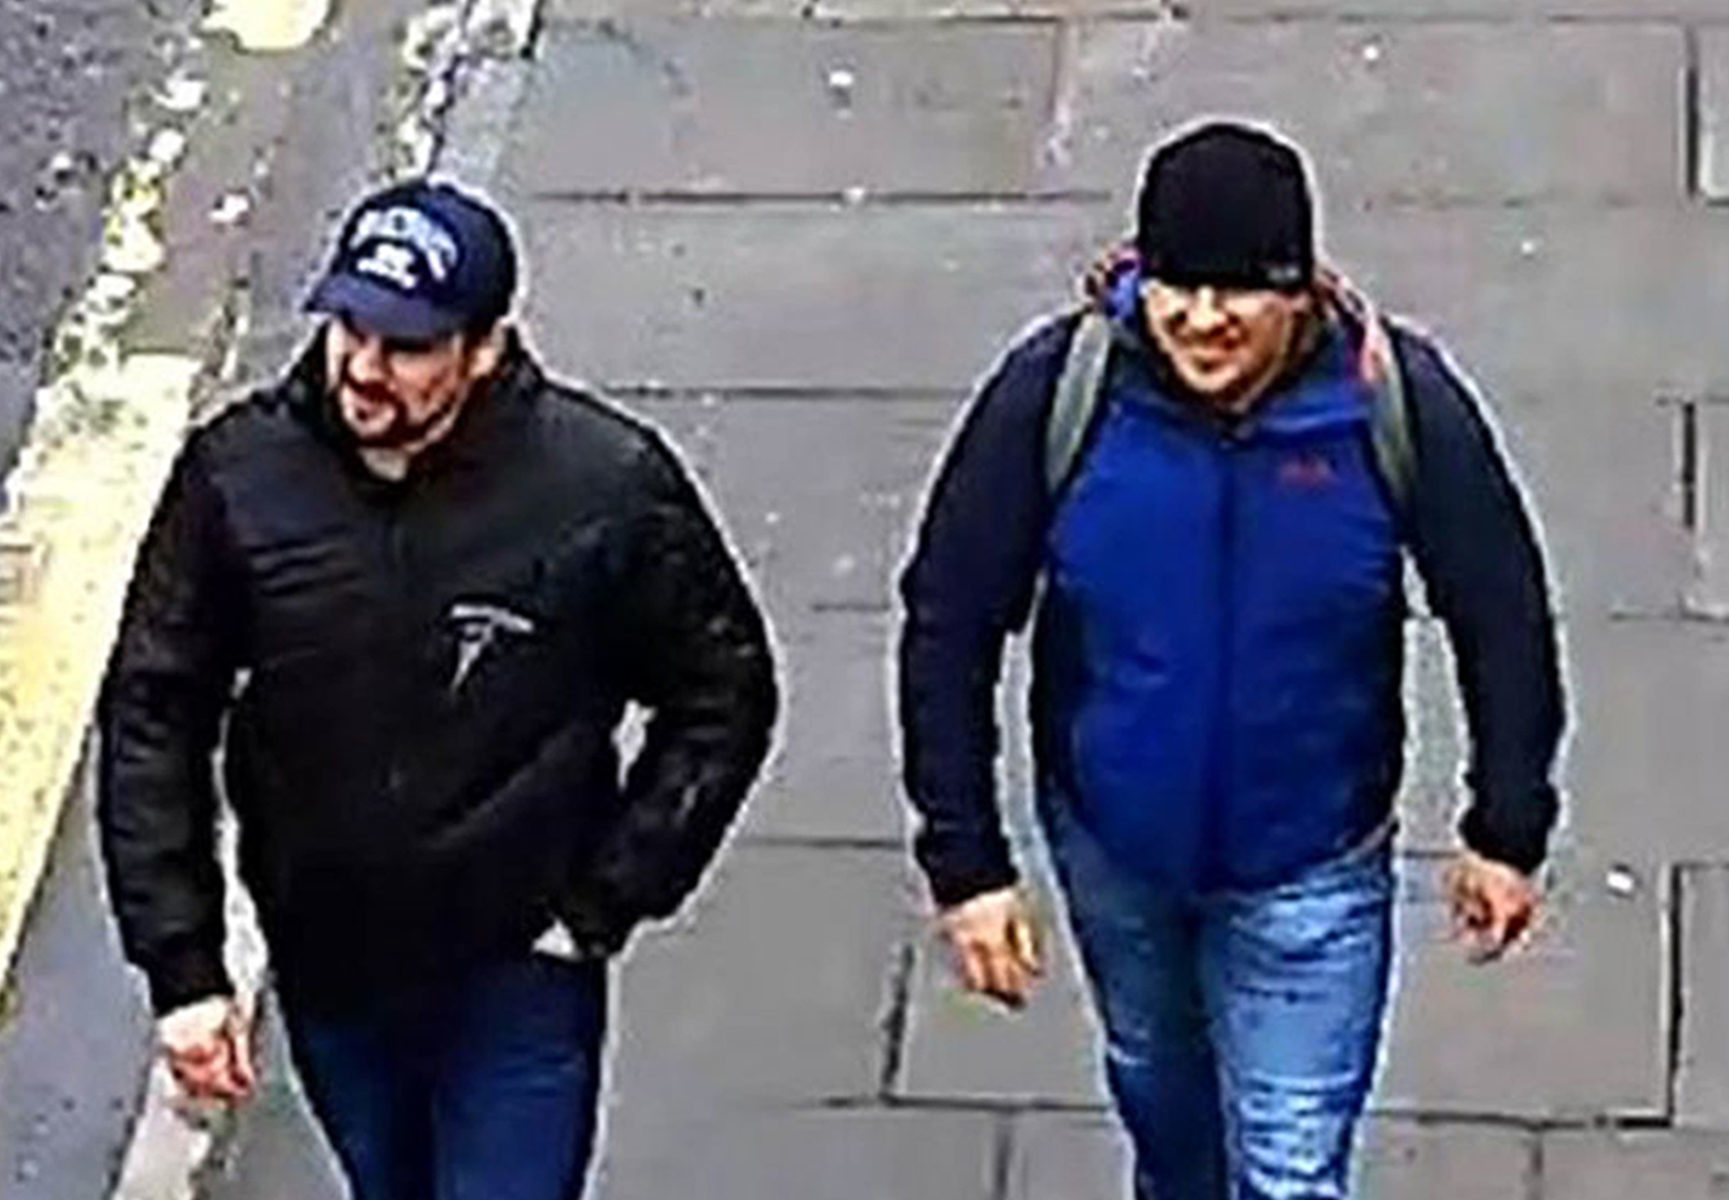 CCTV image issued by the Metropolitan Police of Russian Nationals Ruslan Boshirov and Alexander Petrov on Fisherton Road, Salisbury. (Press Association)